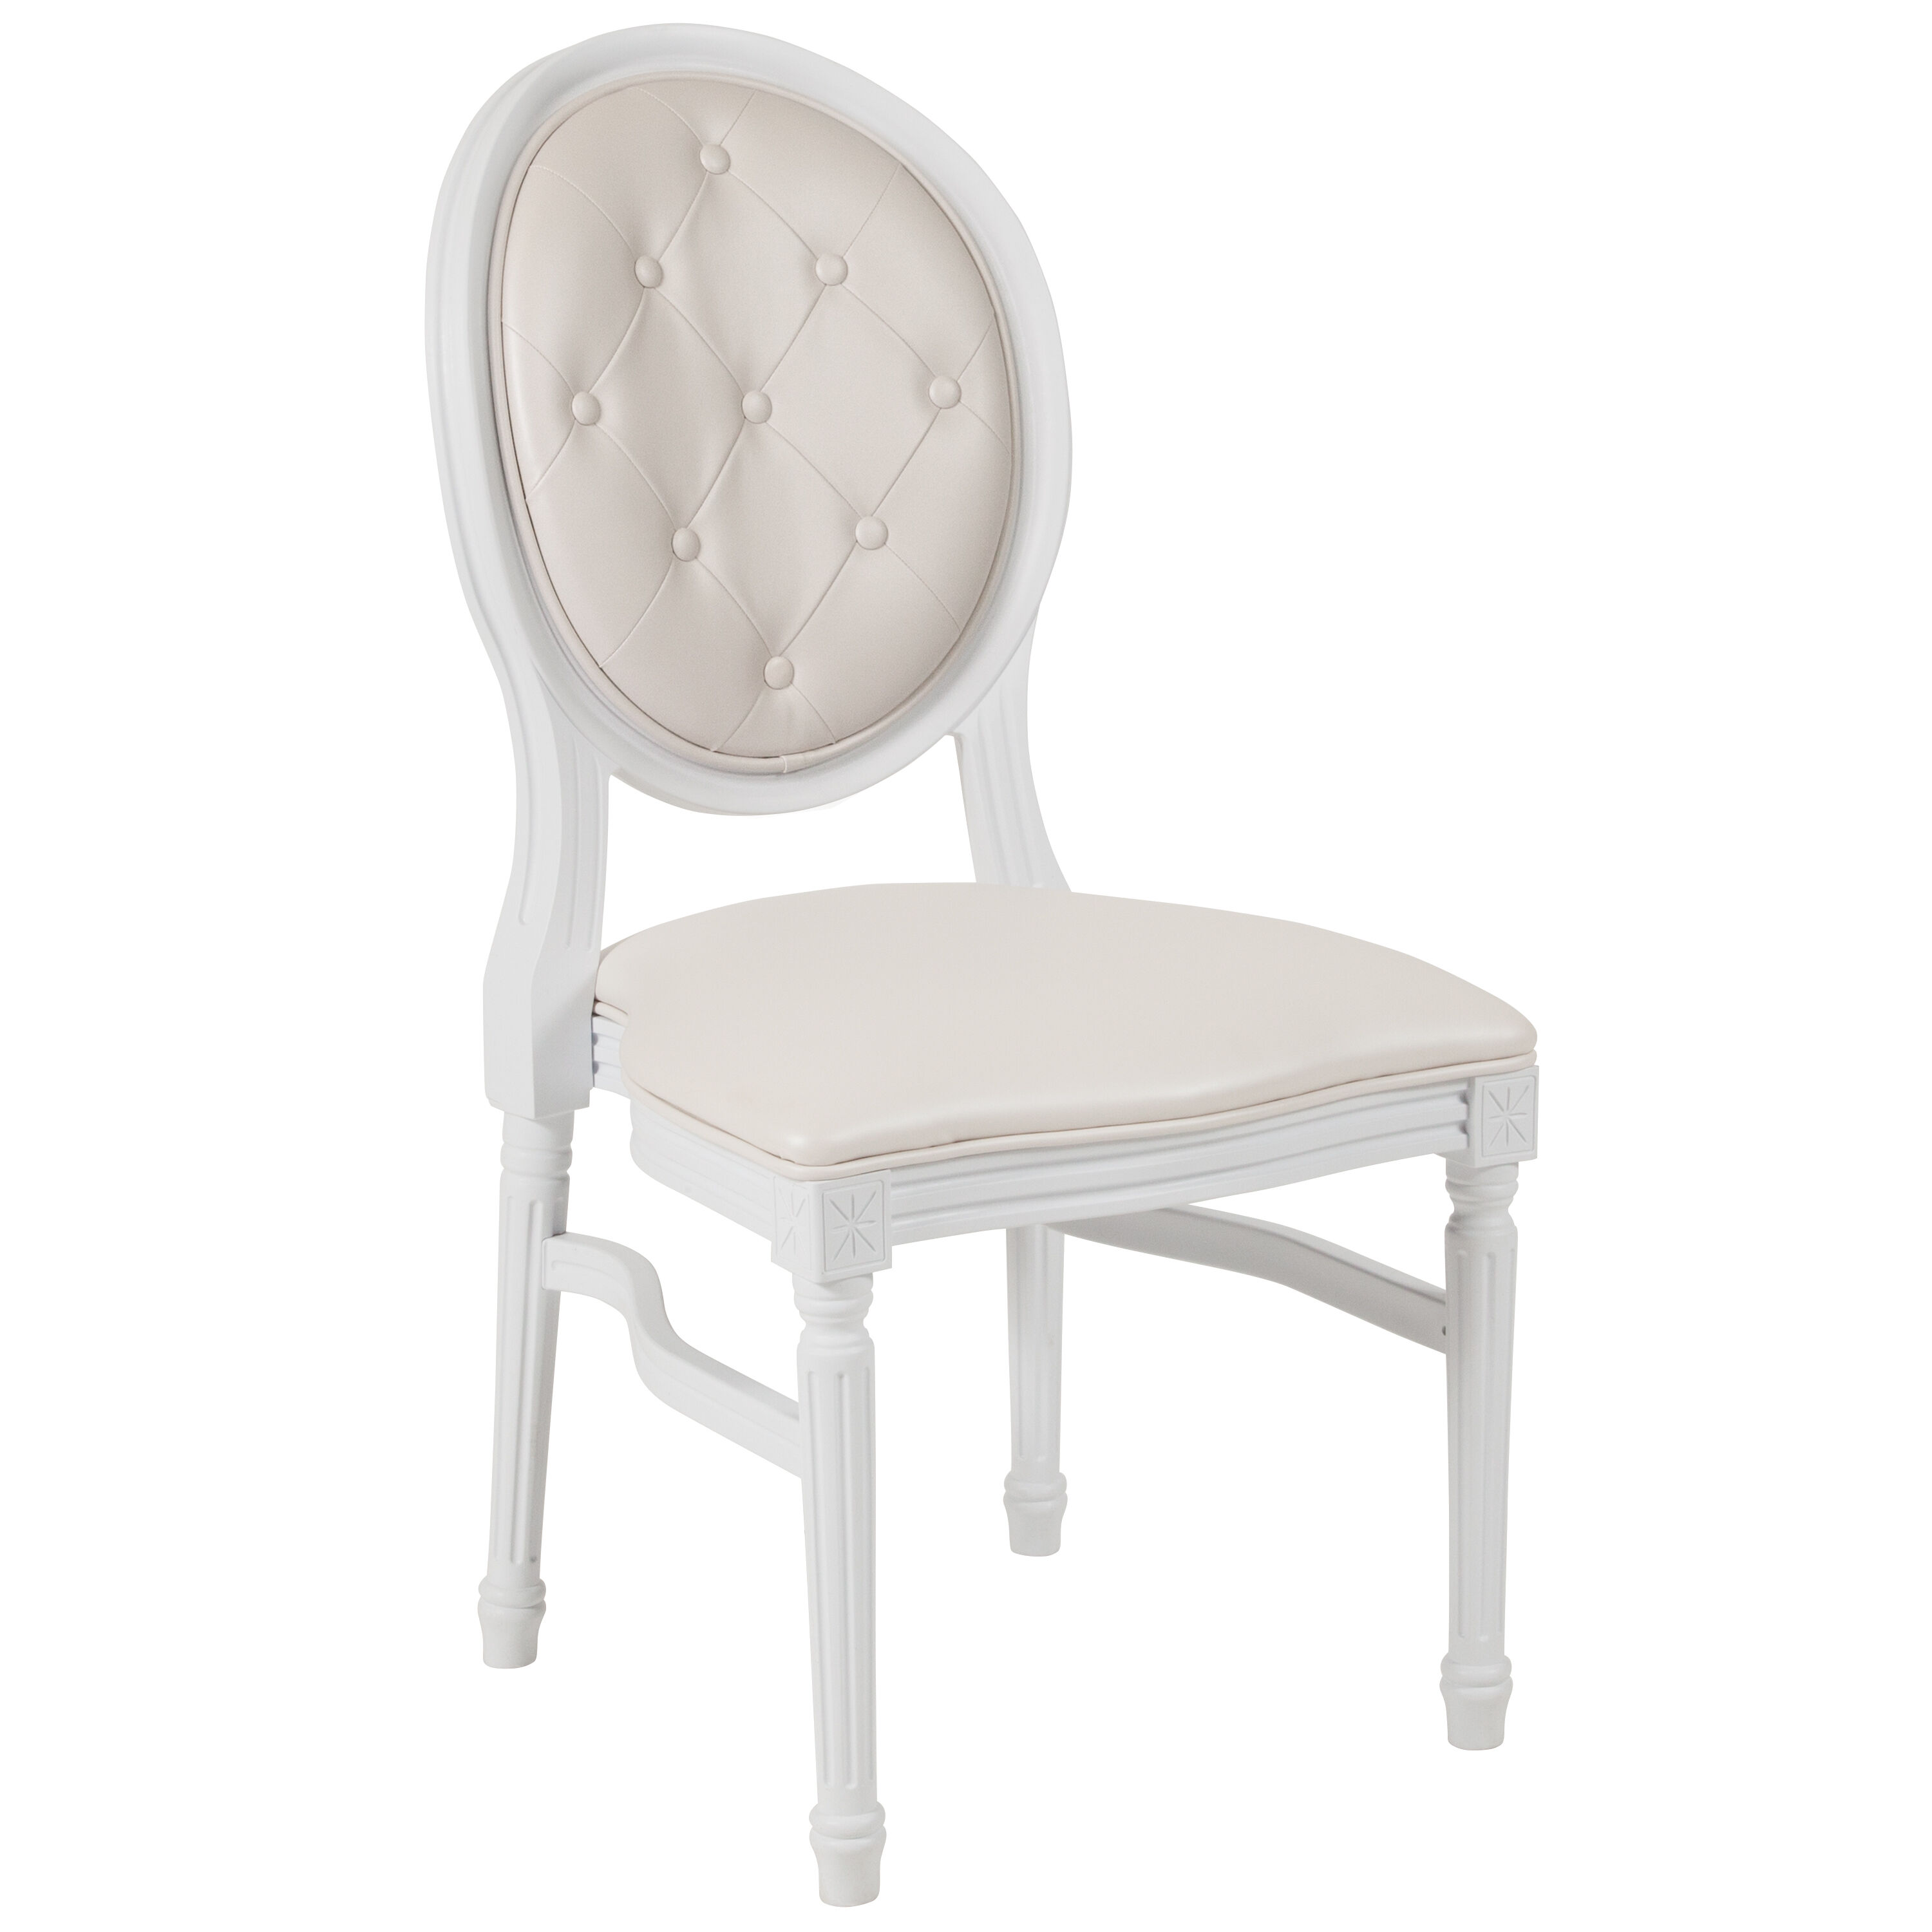 Capacity King Louis Chair with Tufted Back White Vinyl ...  sc 1 st  Best Chiavari Chairs & Round Back Chair - White Frame LE-W-W-T-GG | BestChiavariChairs.com